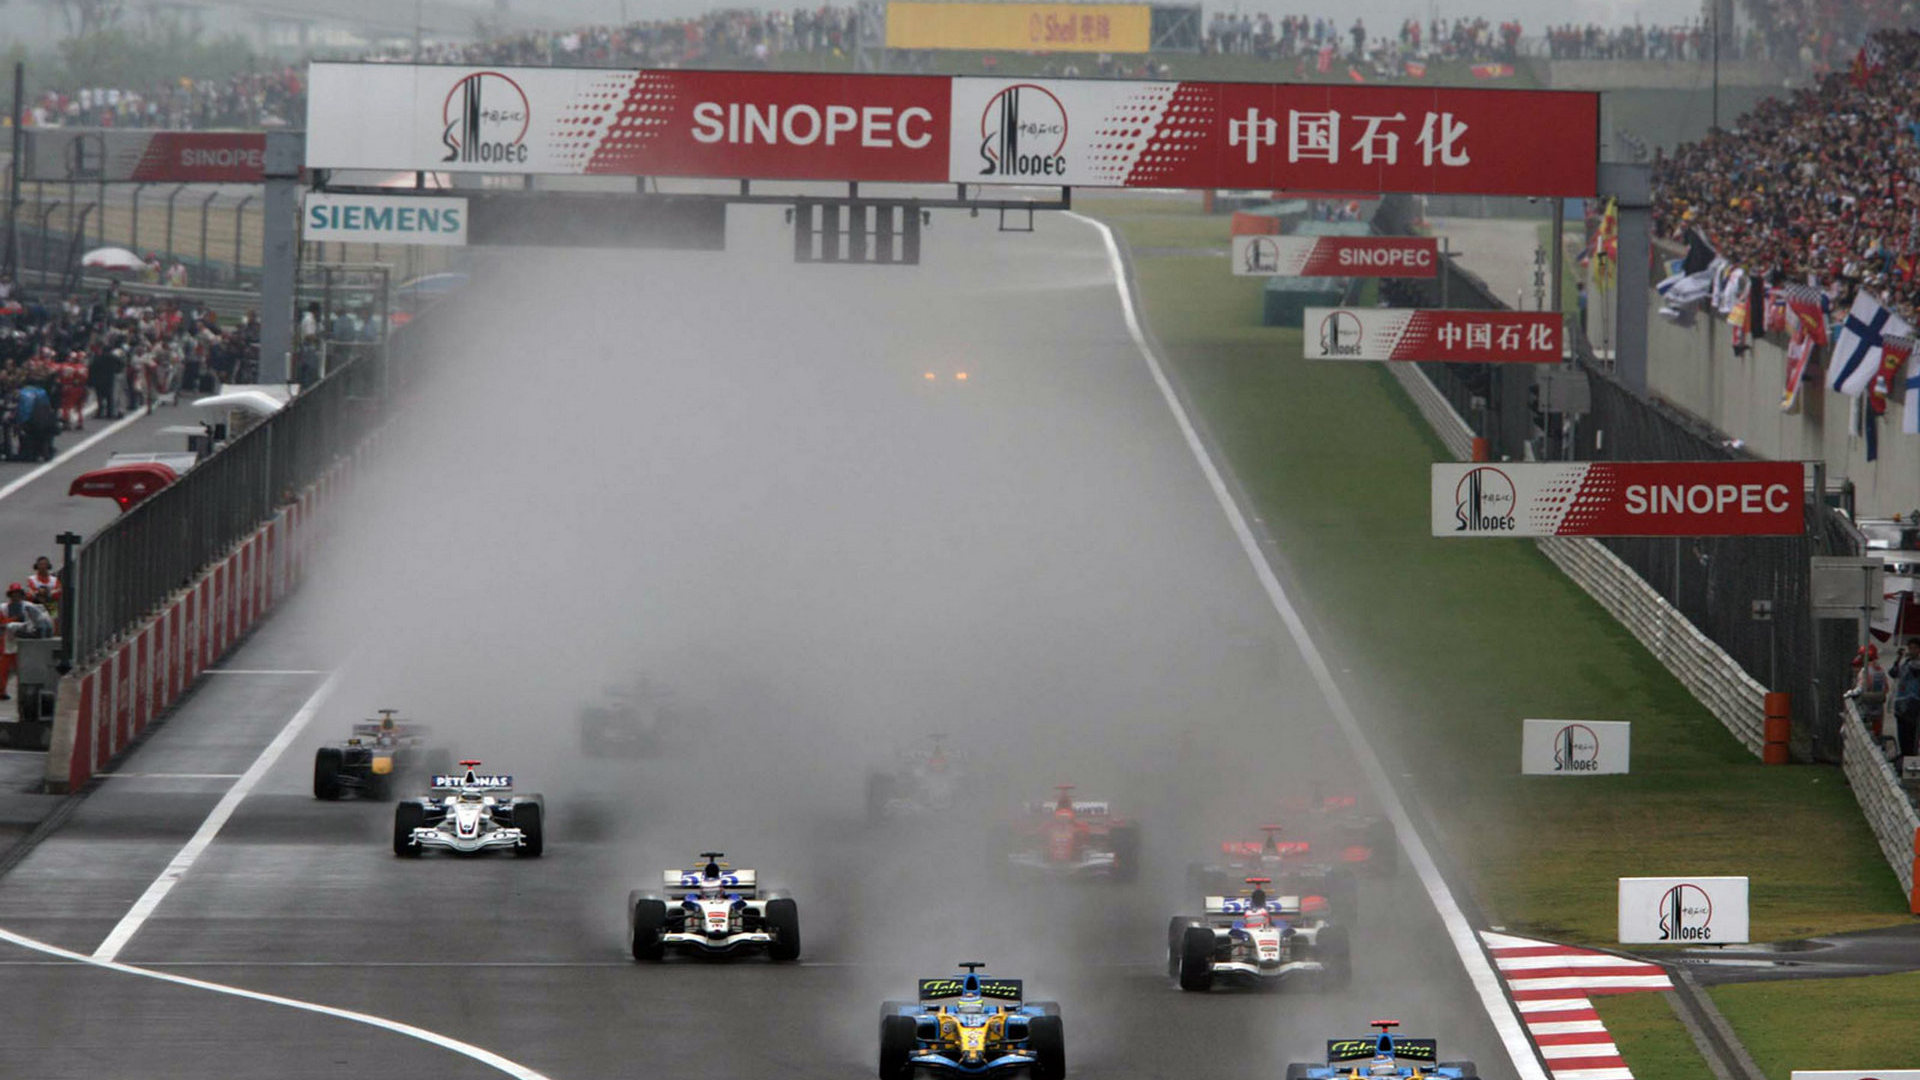 Foto do Circuito de Formula 1 em China, Shangai - foto by F1-Fansite.com